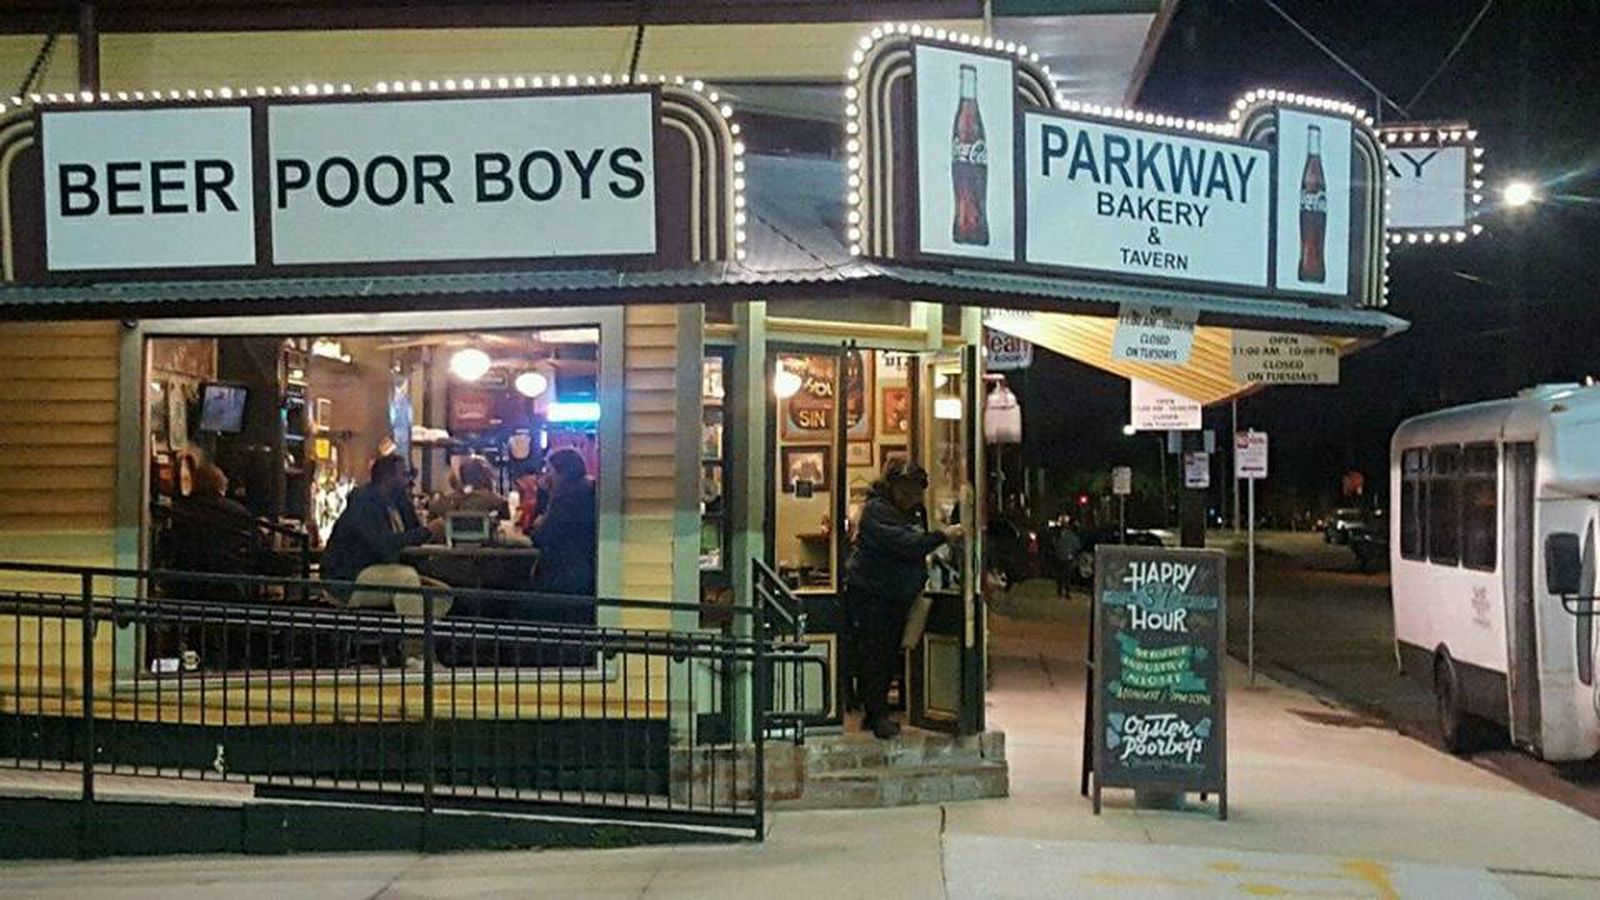 Parkway po boys is throwing a party in honor of a very for Parkway new orleans